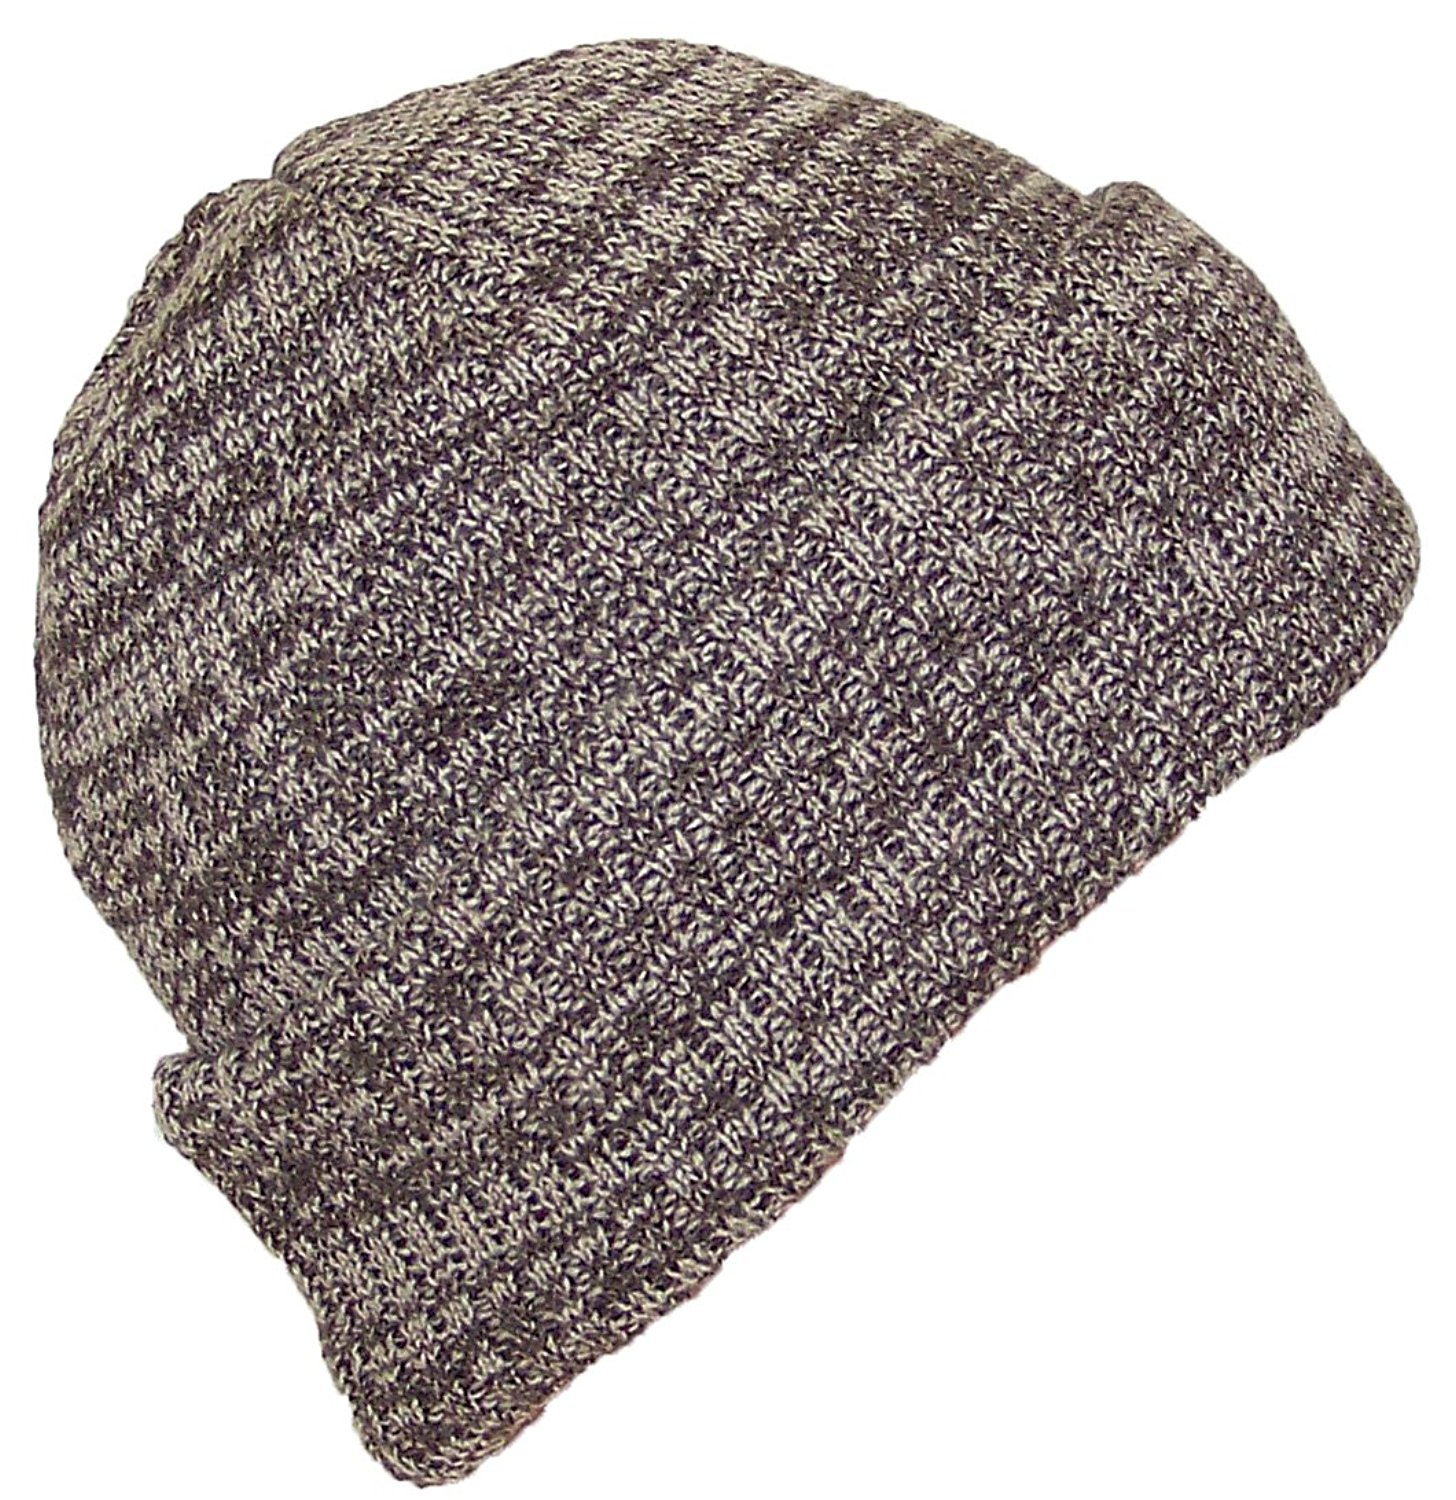 49ed22a6494 Best Winter Hats Adult 2 Tone Color Thick W Fleece Lined Cuffed Winter Hat  (One Size) - Gray - Walmart.com